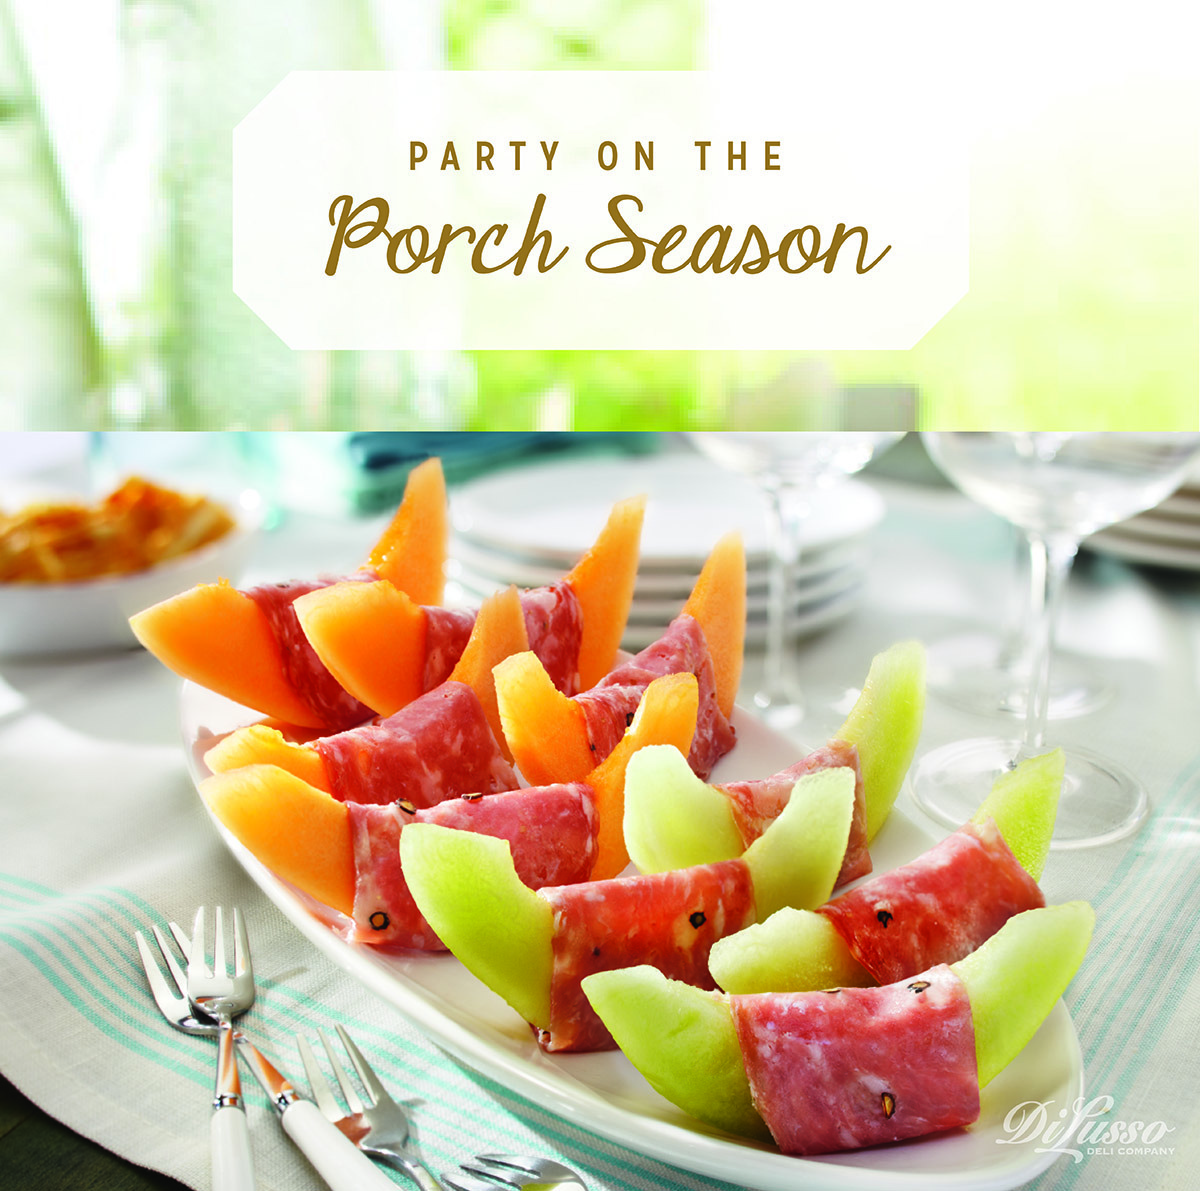 It's officially Party on the Porch season!